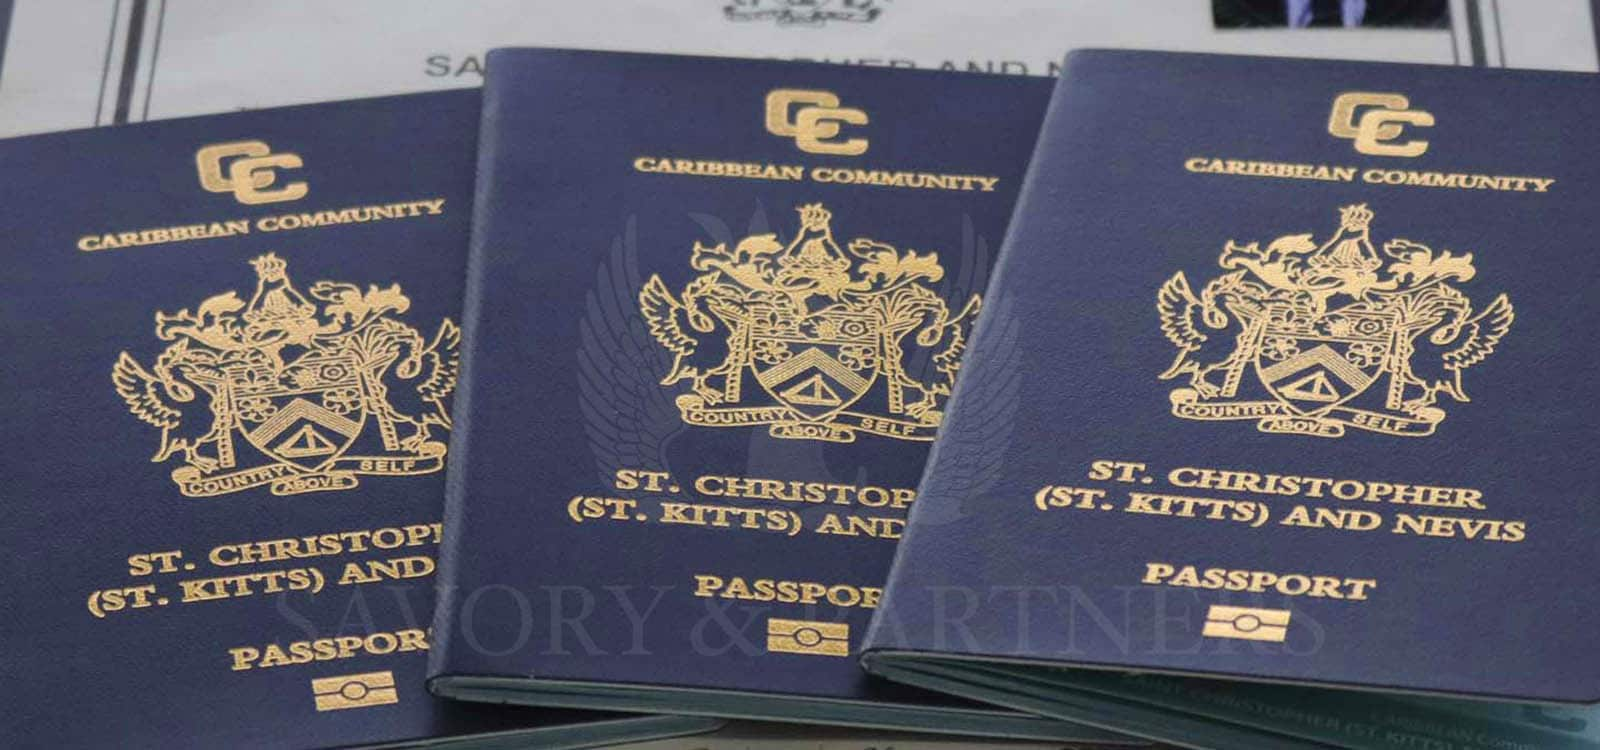 St Kitts & Nevis passports and citizenship certificate.